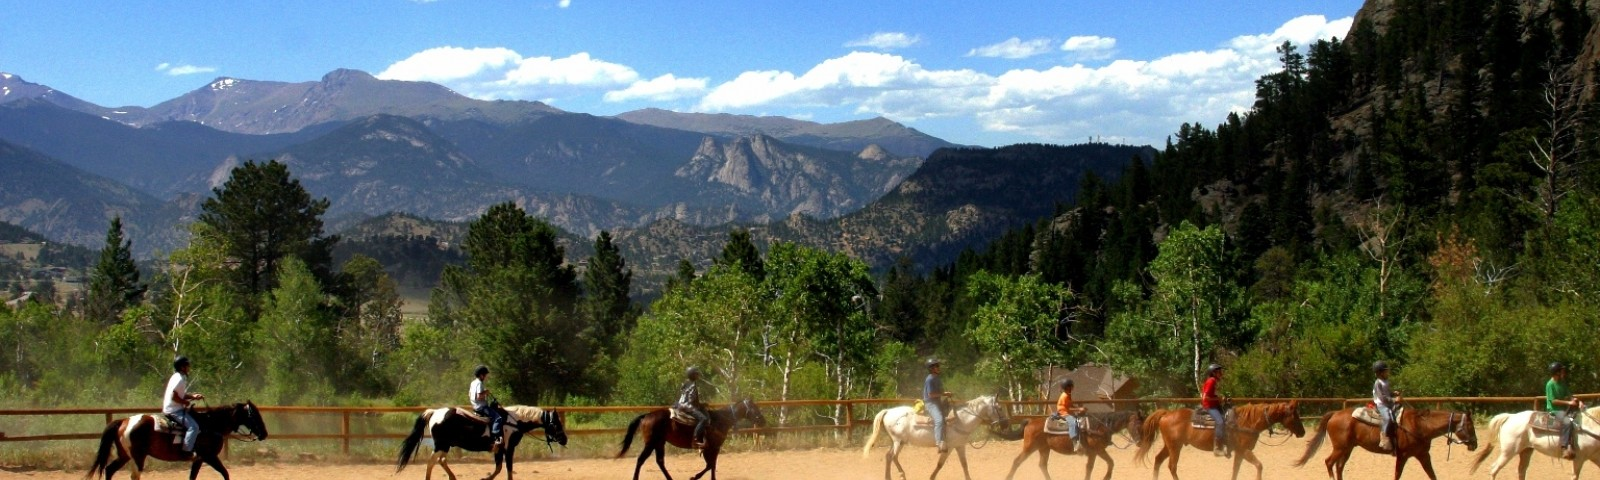 Review of Cheley Colorado Camps | Lantern Camps